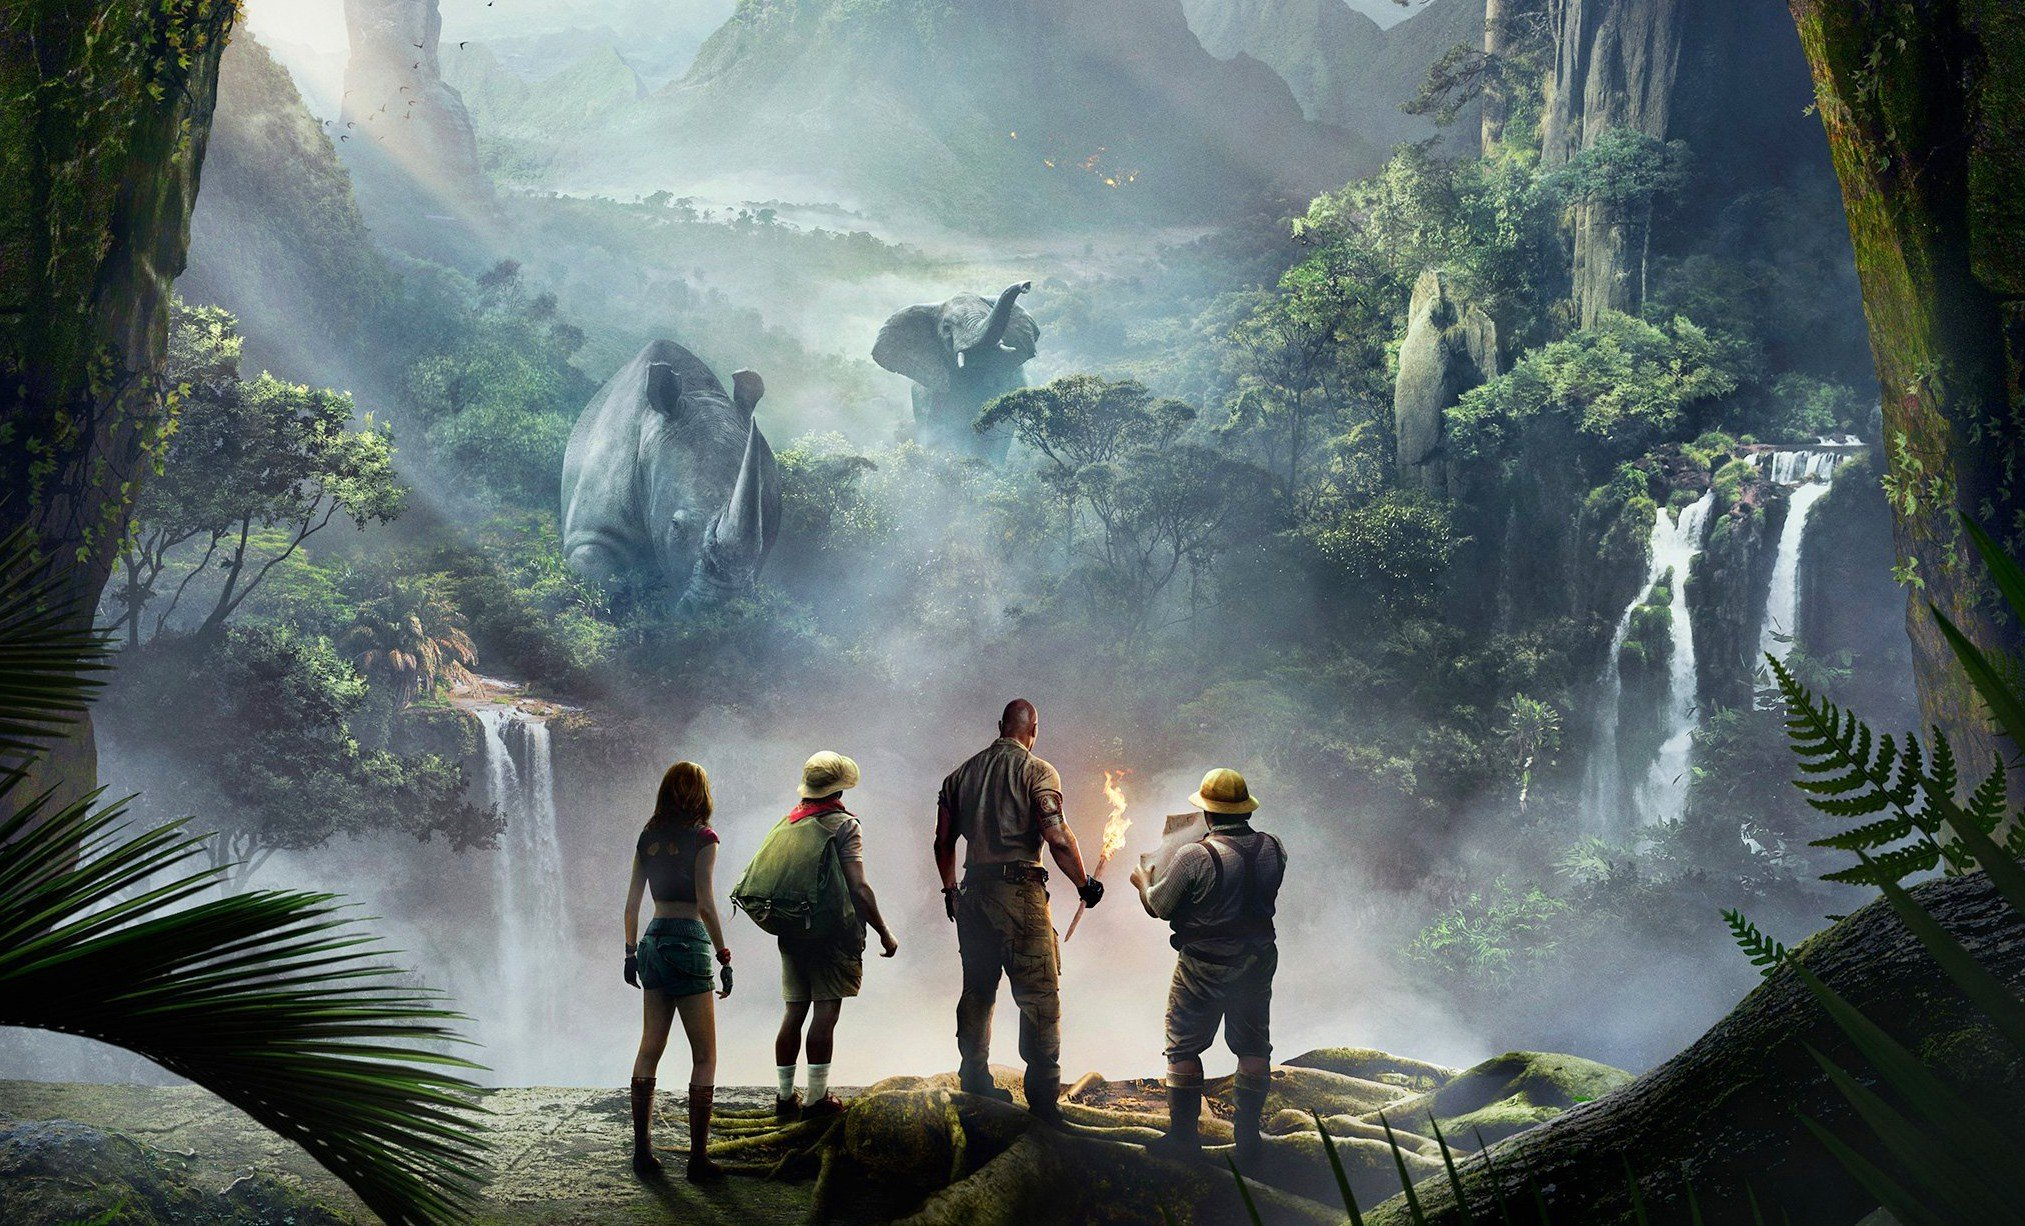 Jumanji Wallpaper Image Group 30 2025x1226